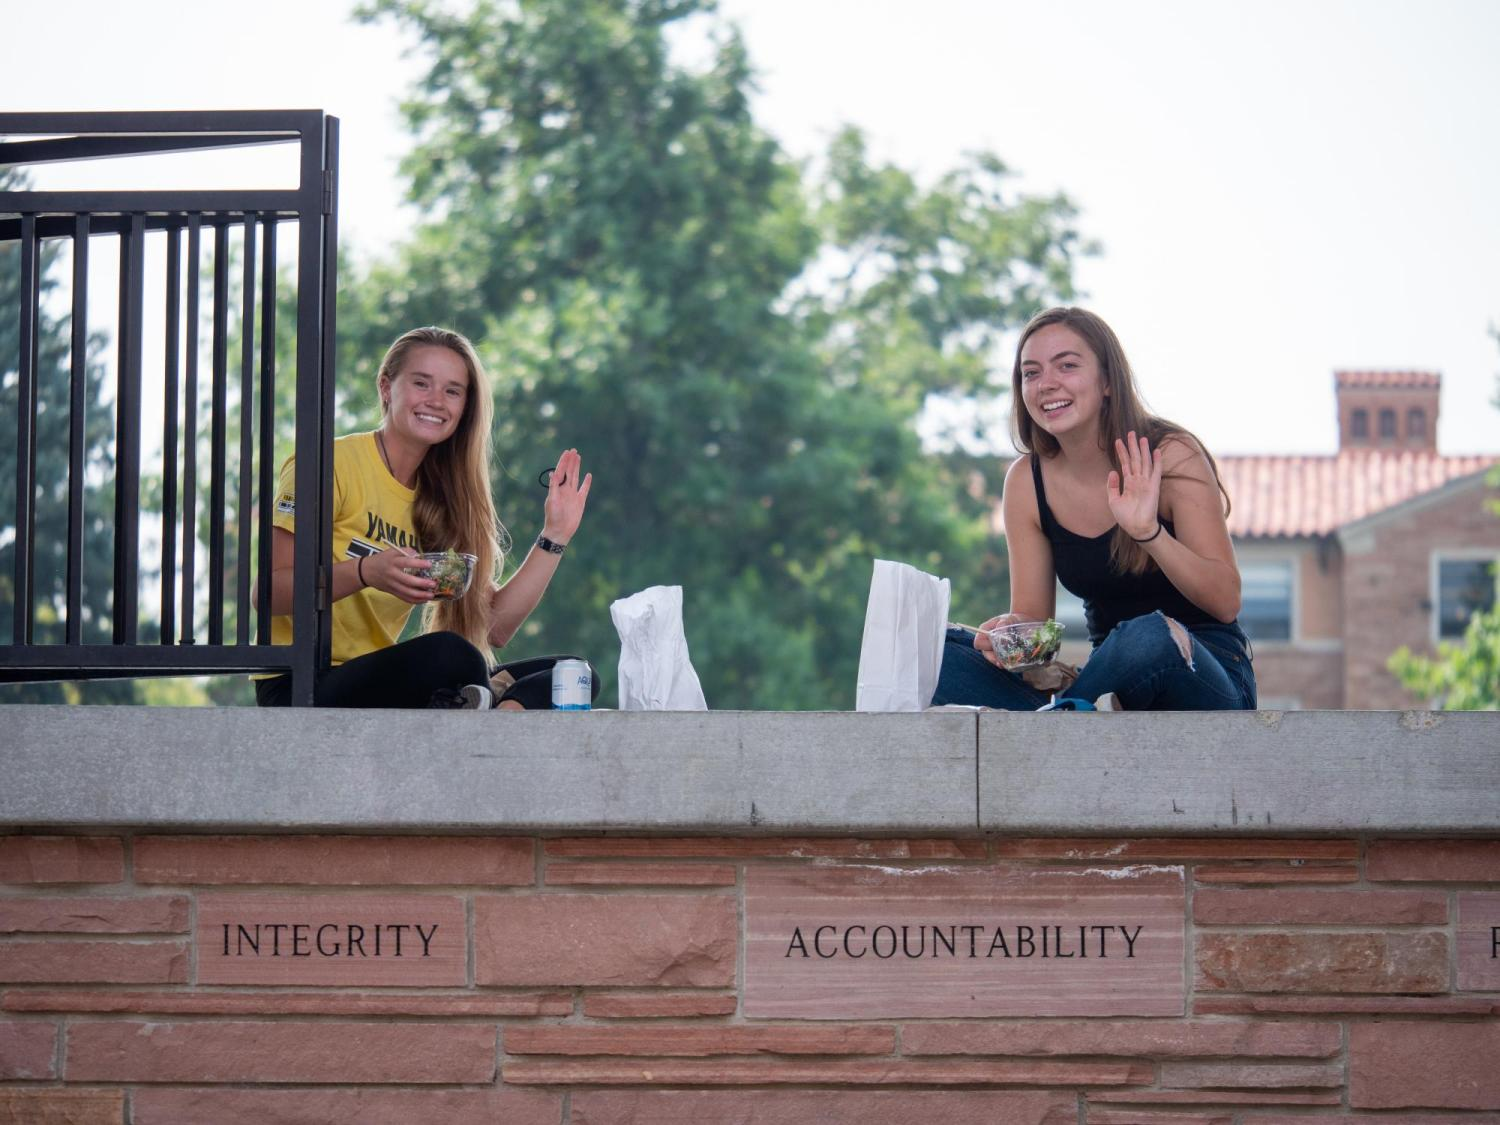 Two female students on campus eating lunch